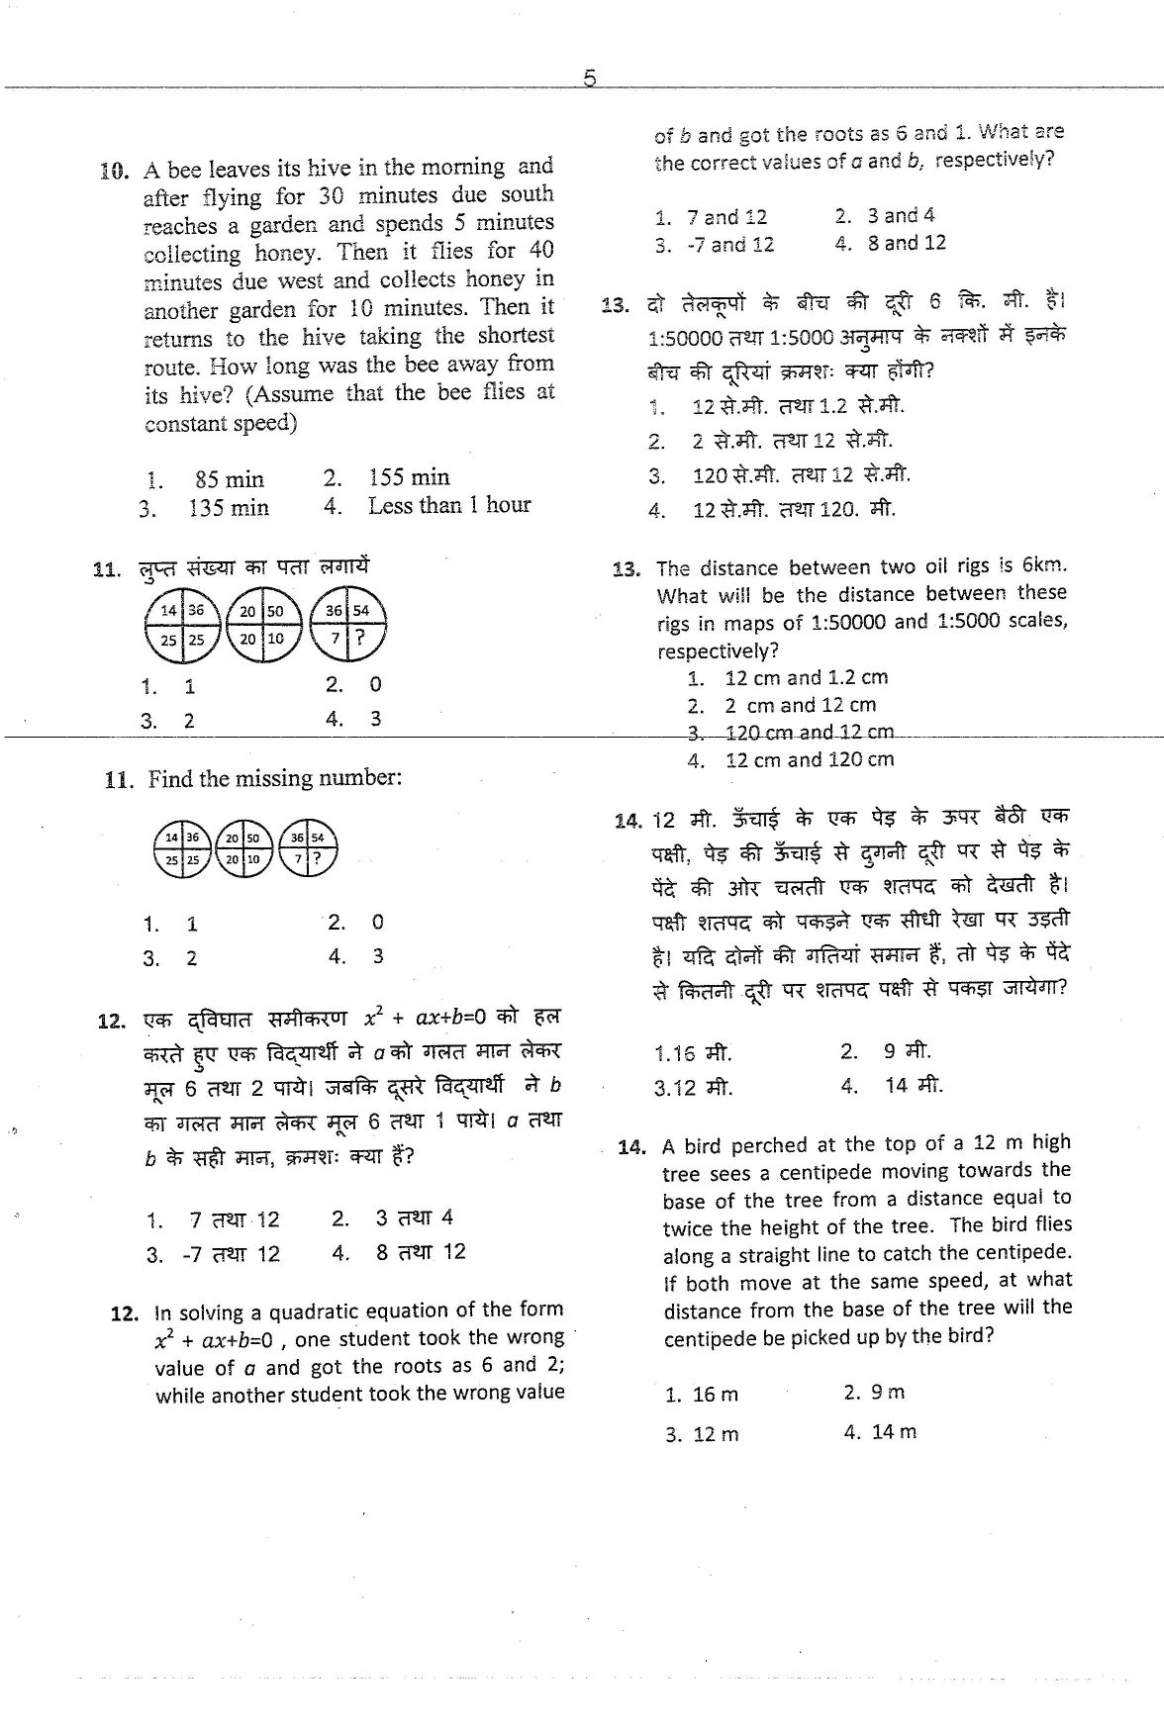 Csir ugc net mathematical science exam sample question paper 2017 2018 student forum